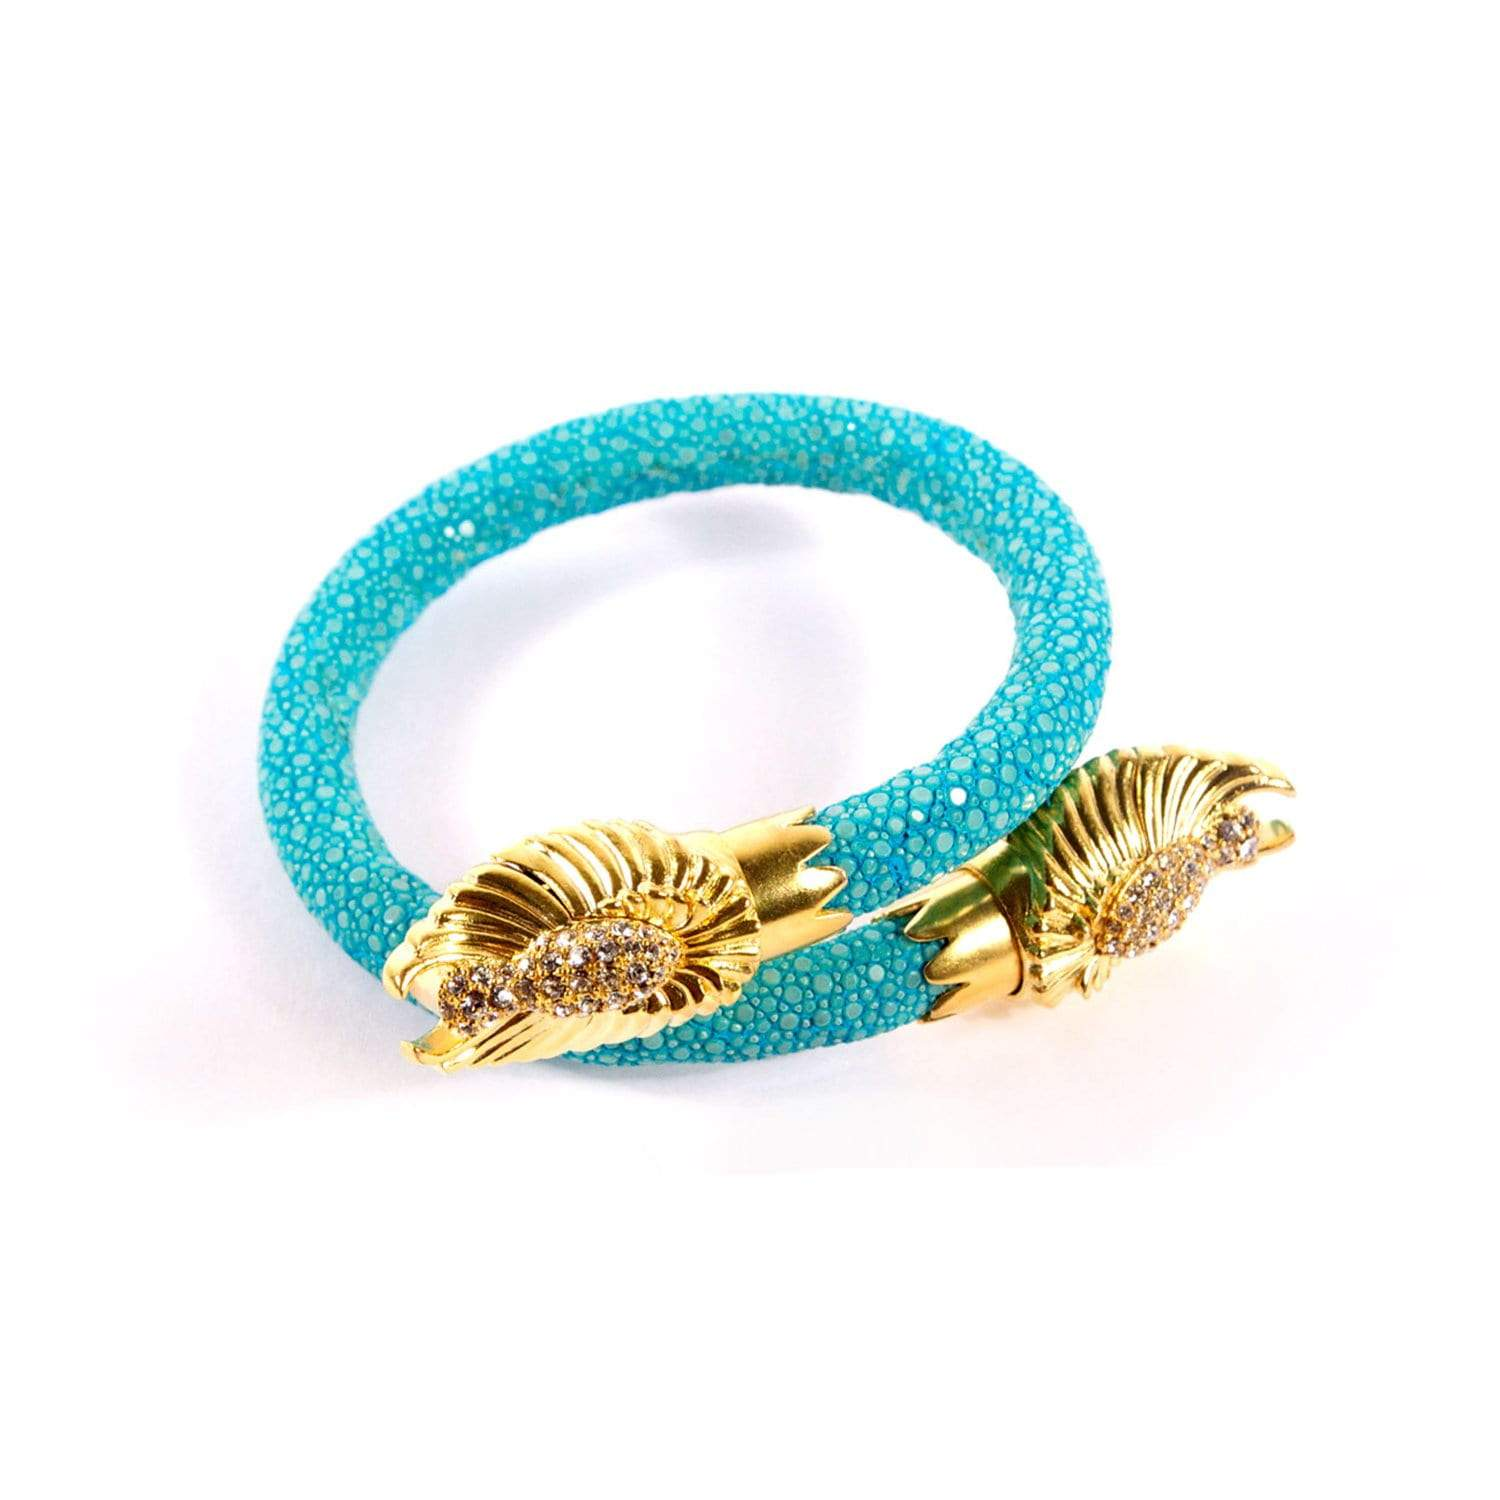 Angel Wing End Caps on Turquoise Stingray Wrist Wrap | BuDhaGirl